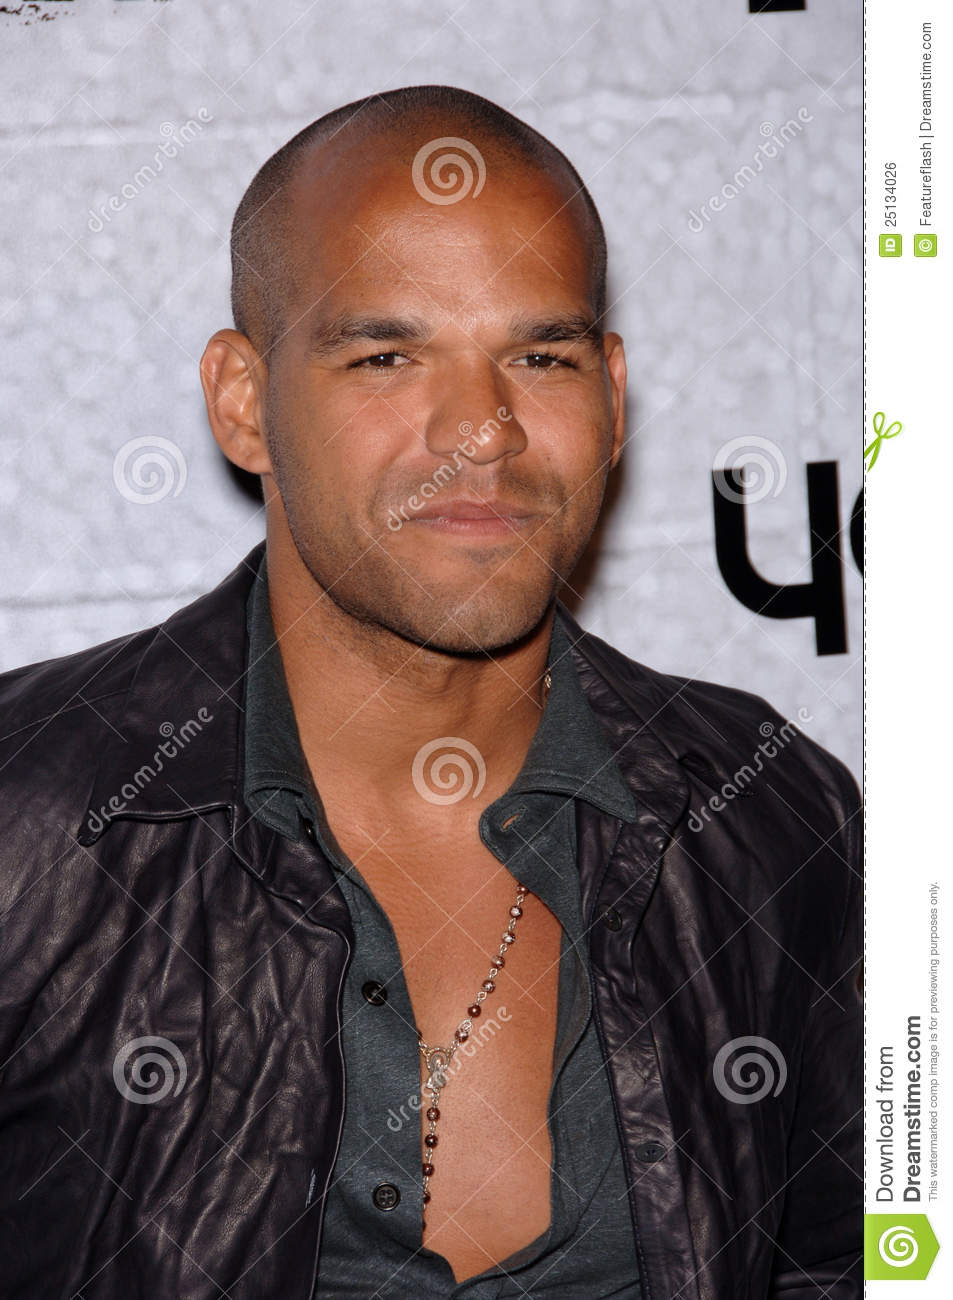 amaury nolascoamaury nolasco csi, amaury nolasco twitter, amaury nolasco films, amaury nolasco csi miami, amaury nolasco instagram, amaury nolasco facebook, amaury nolasco height, amaury nolasco interview, amaury nolasco, amaury nolasco net worth, amaury nolasco wedding, amaury nolasco eva longoria, amaury nolasco transformers, amaury nolasco and jennifer morrison, amaury nolasco 2015, amaury nolasco fast and furious, amaury nolasco wiki, amaury nolasco imdb, amaury nolasco biography, amaury nolasco benchwarmers